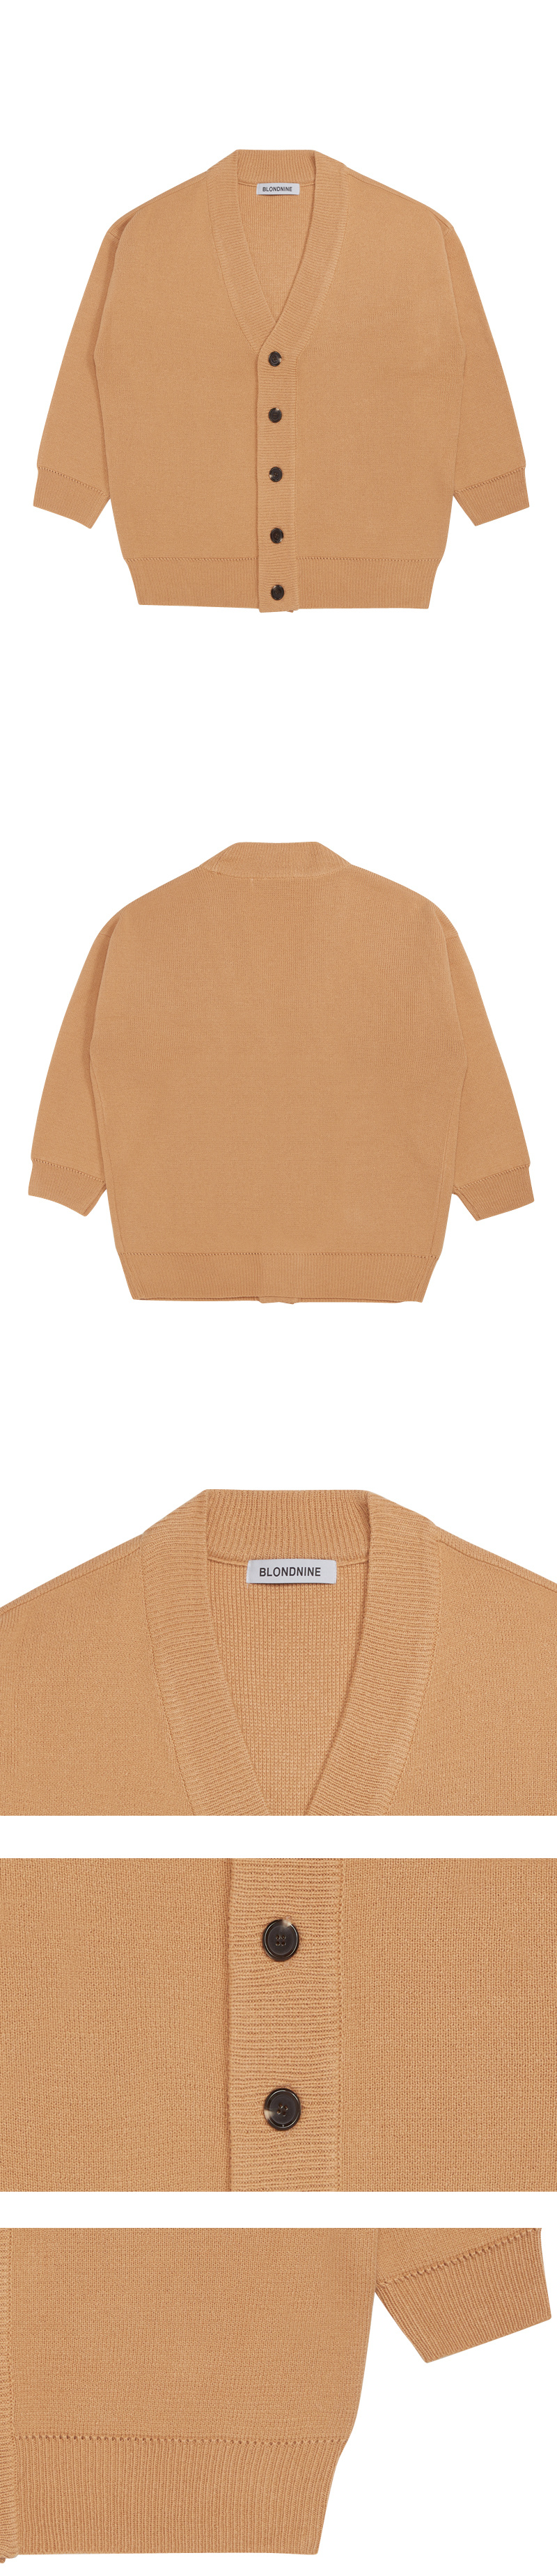 블론드나인(BLOND9) Basic Knit Cardigan